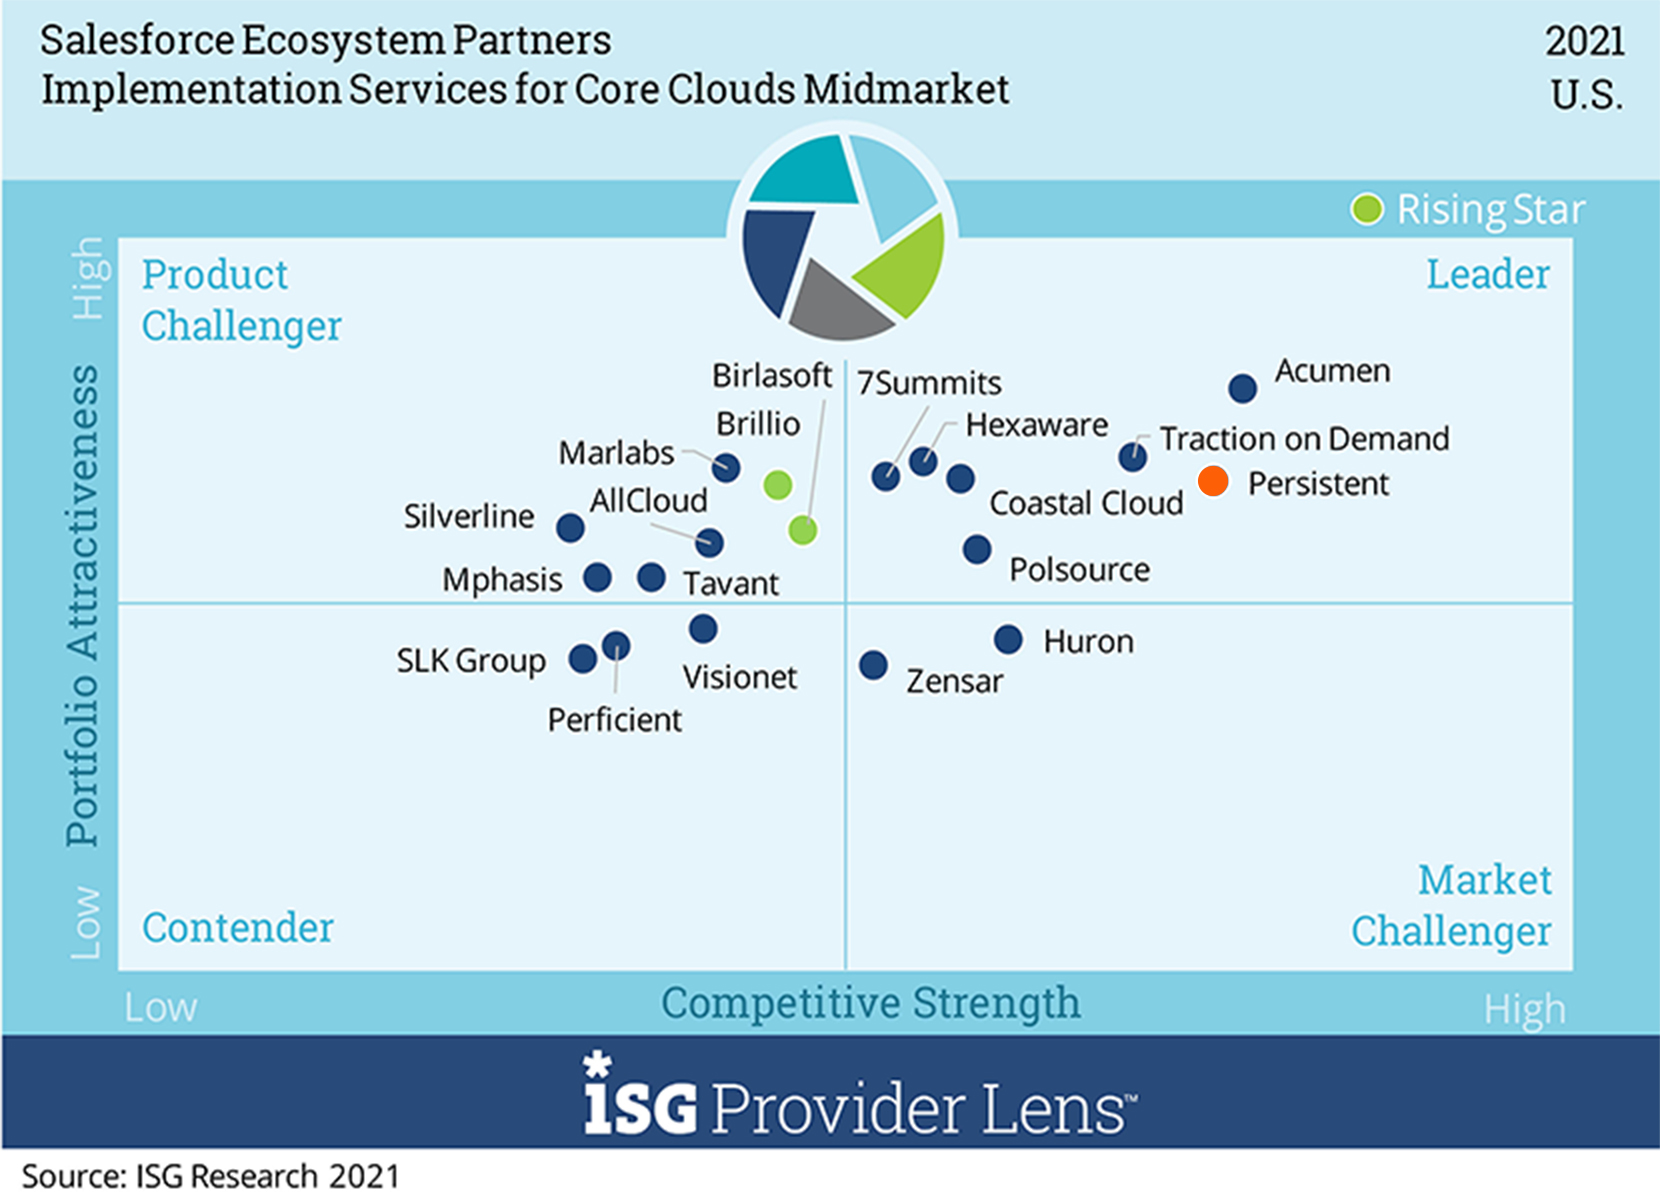 Leader' in Implementation Services for Core Clouds – Midmarket in U.S. and Germany